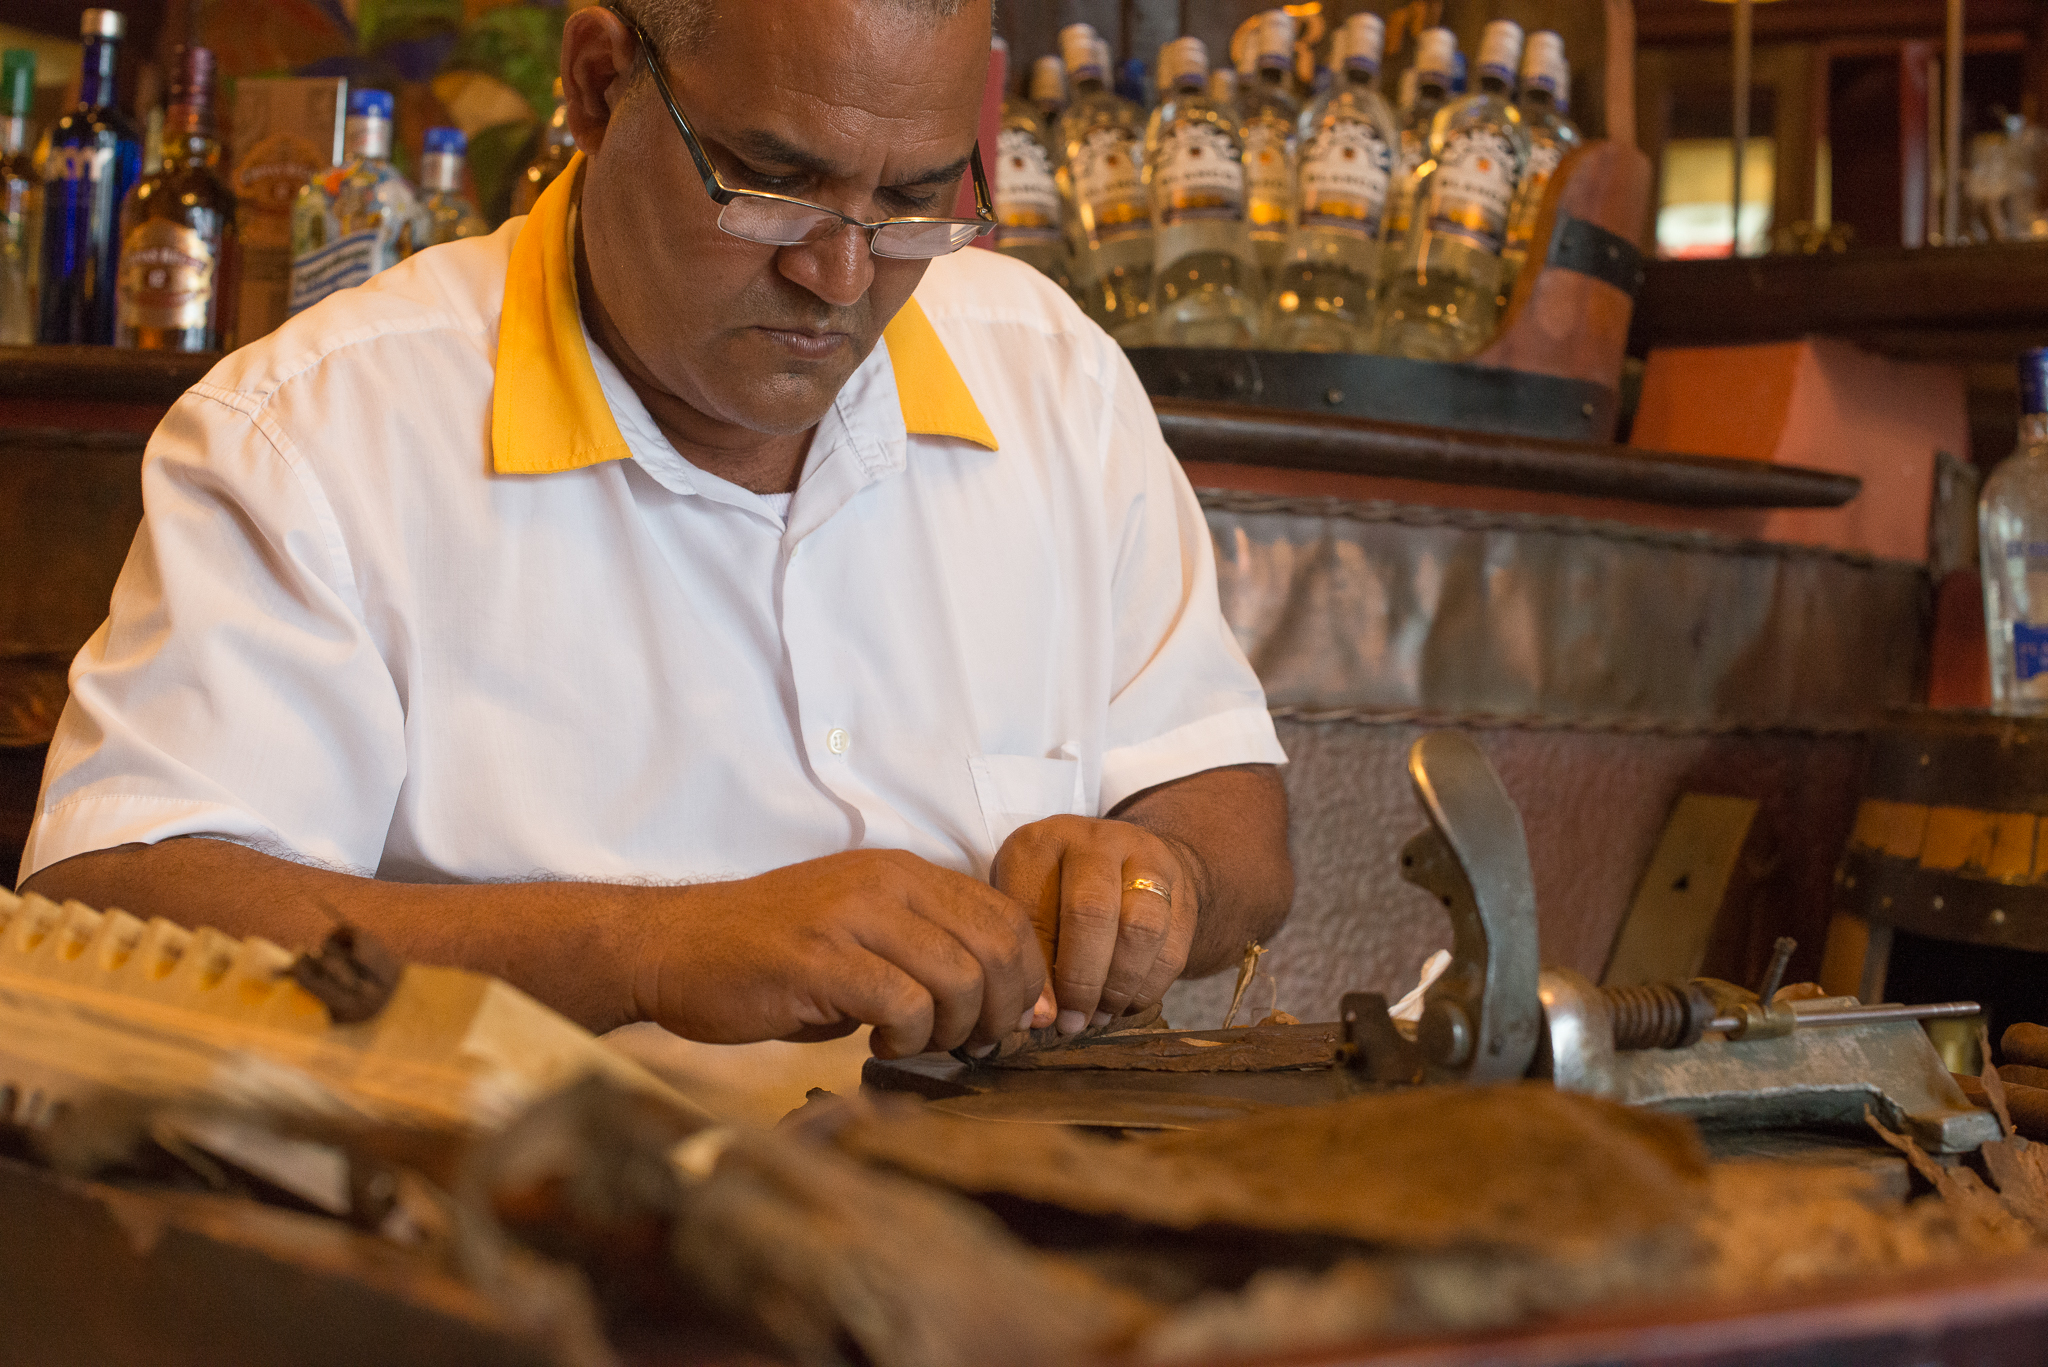 Nelson Making Us Cigars...